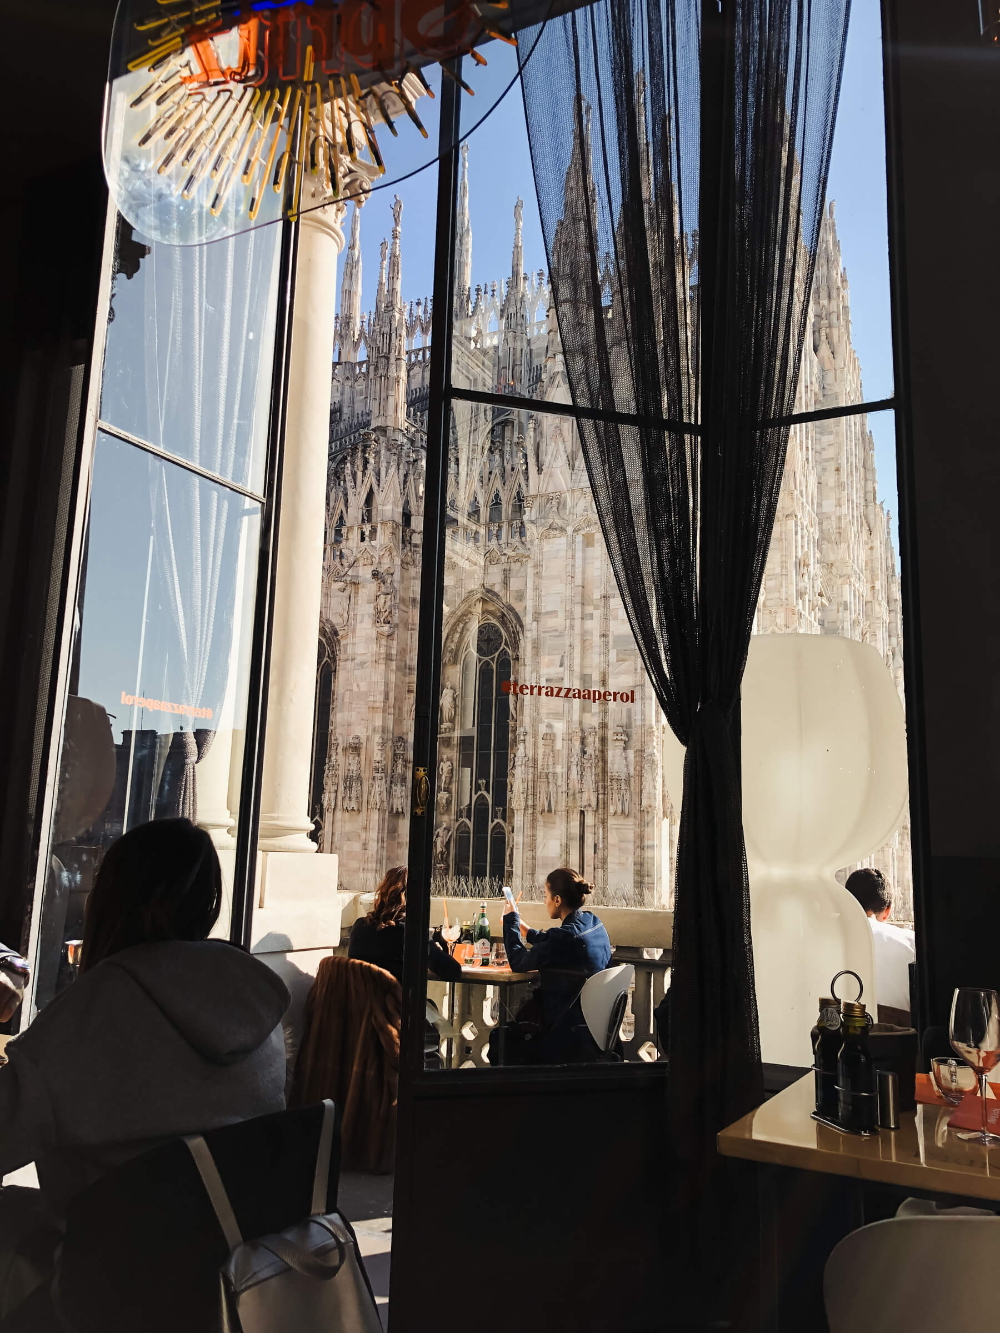 The Ultimate Guide to Milan, Italy — SABA BOK | This view is probably my favorite. Looking for a guide to your upcoming trip to Milan? I've got you covered. #milano #traveldestinations #travelguide